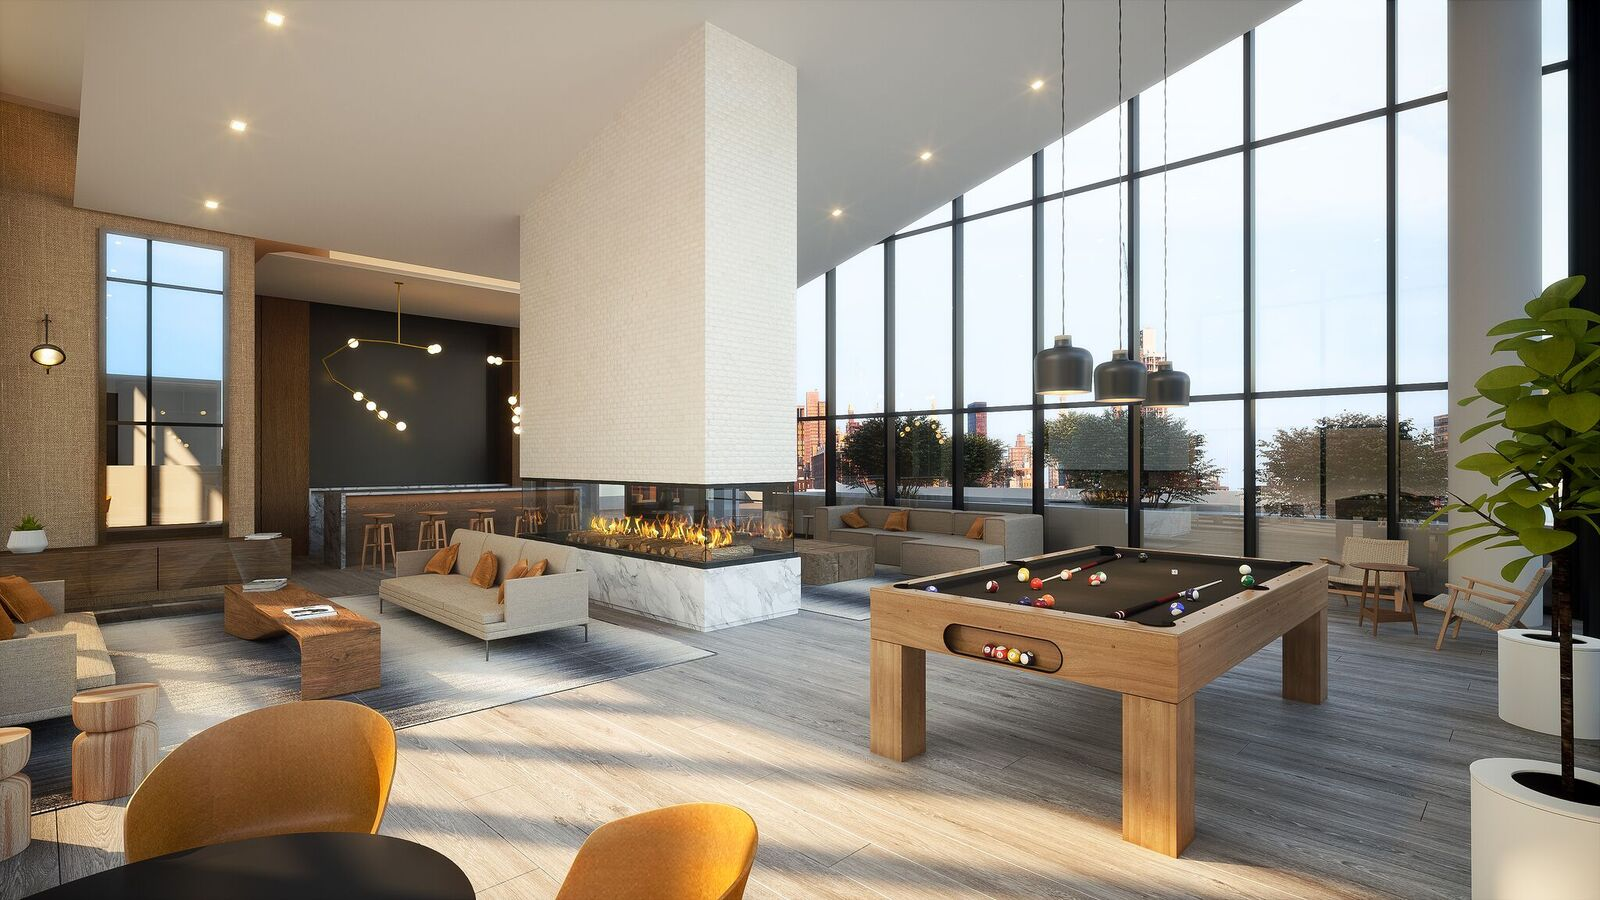 Ollie Co-Living Spaces in Long Island City